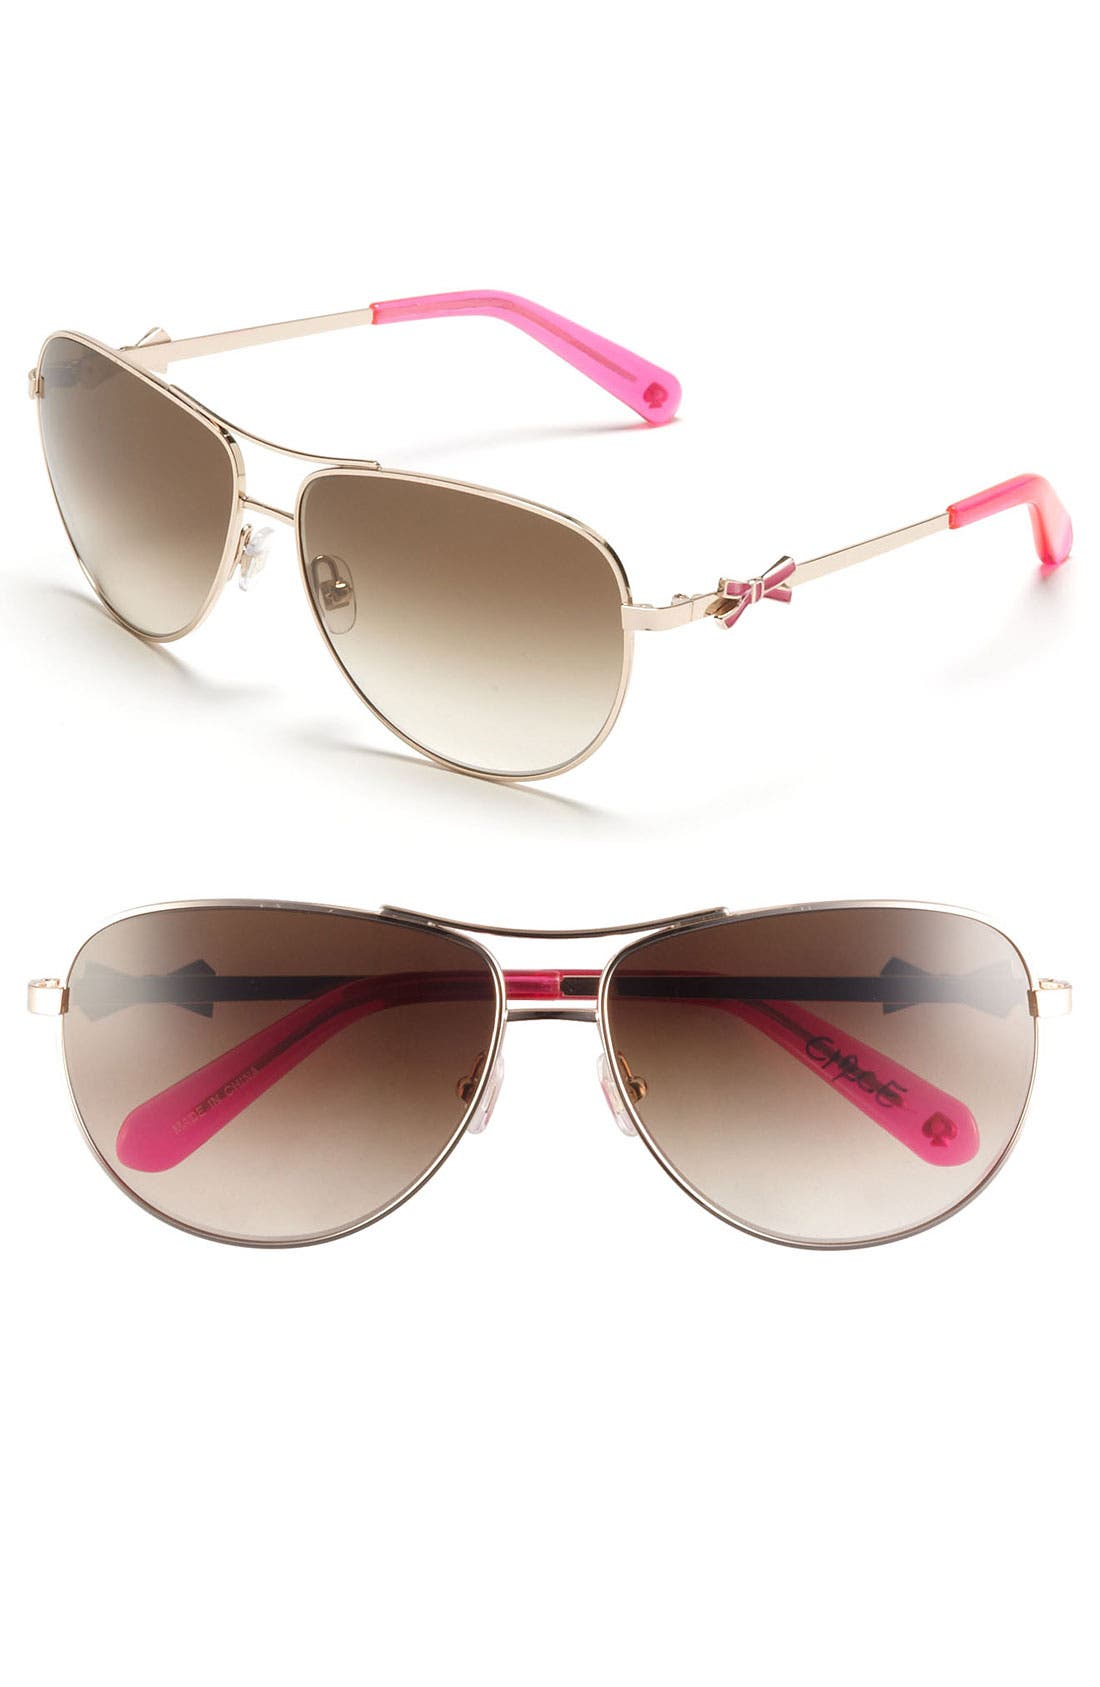 Main Image - kate spade new york 'circe' 59mm metal aviator sunglasses